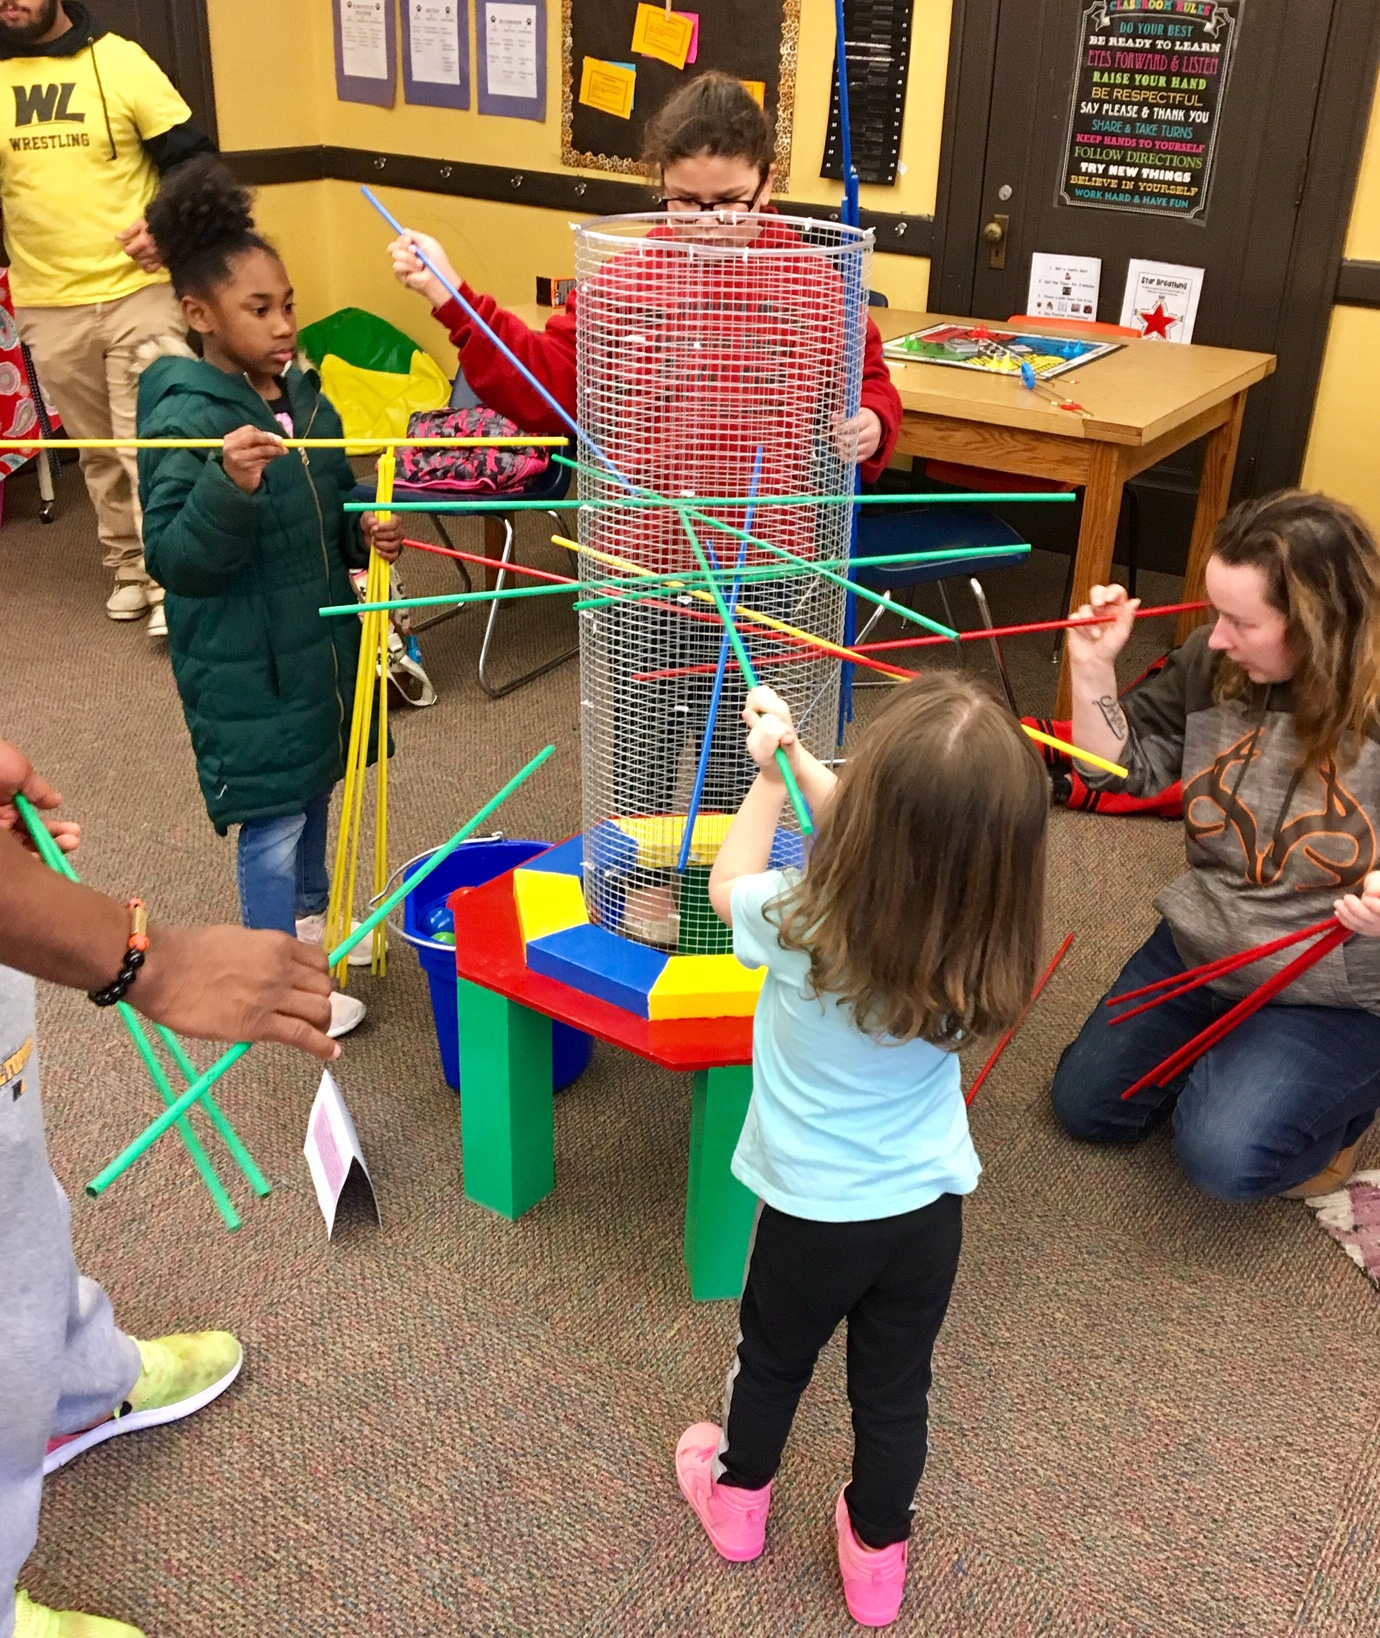 Madison Elementary School - Play to Learn Wednesday March 13 2019